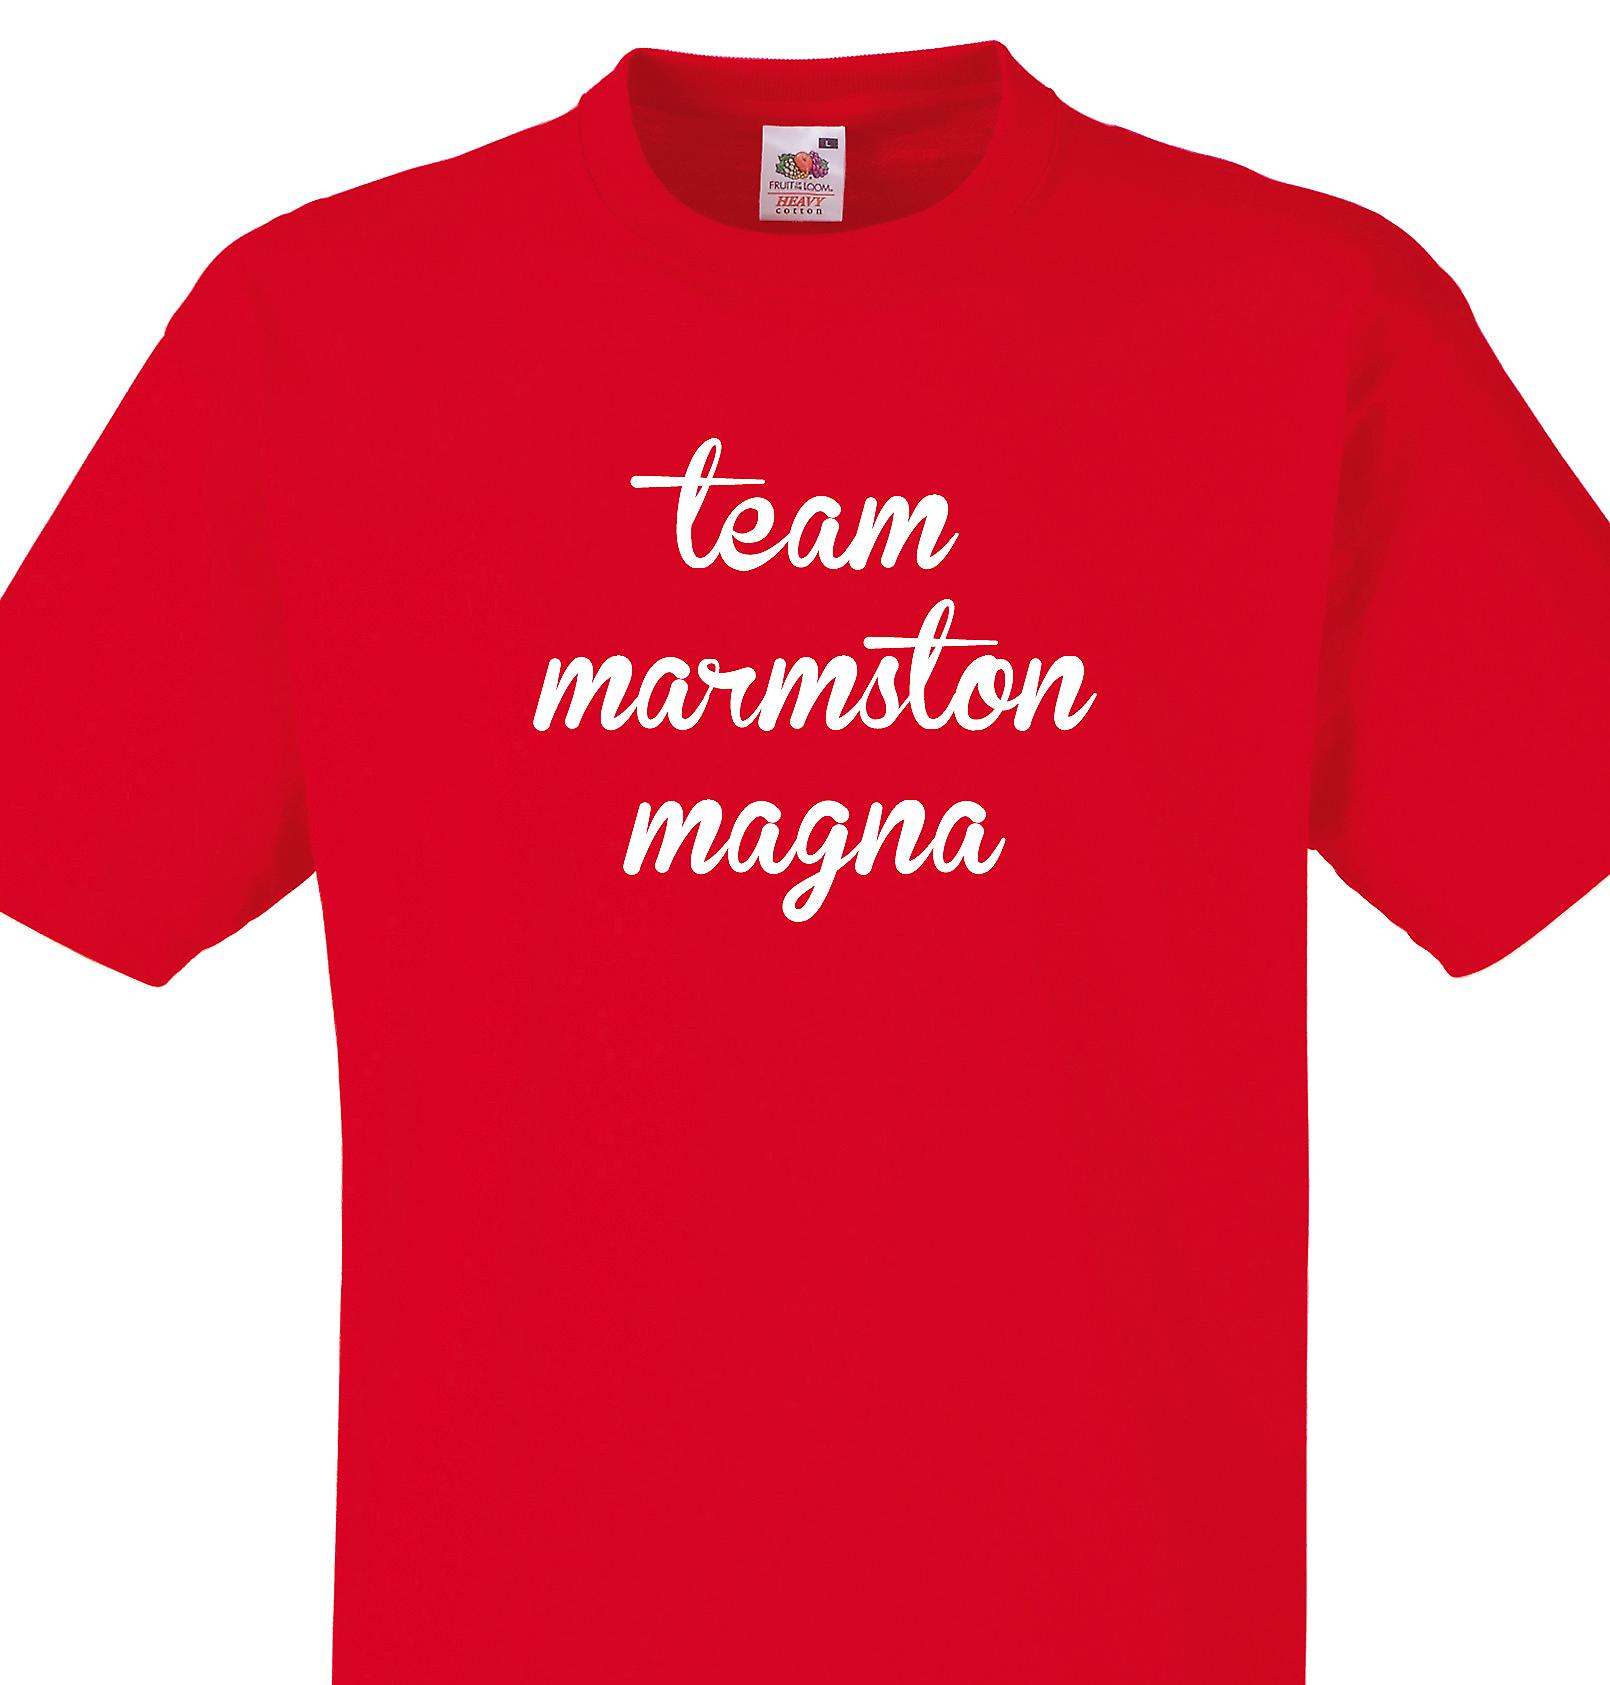 Team Marmston magna Red T shirt